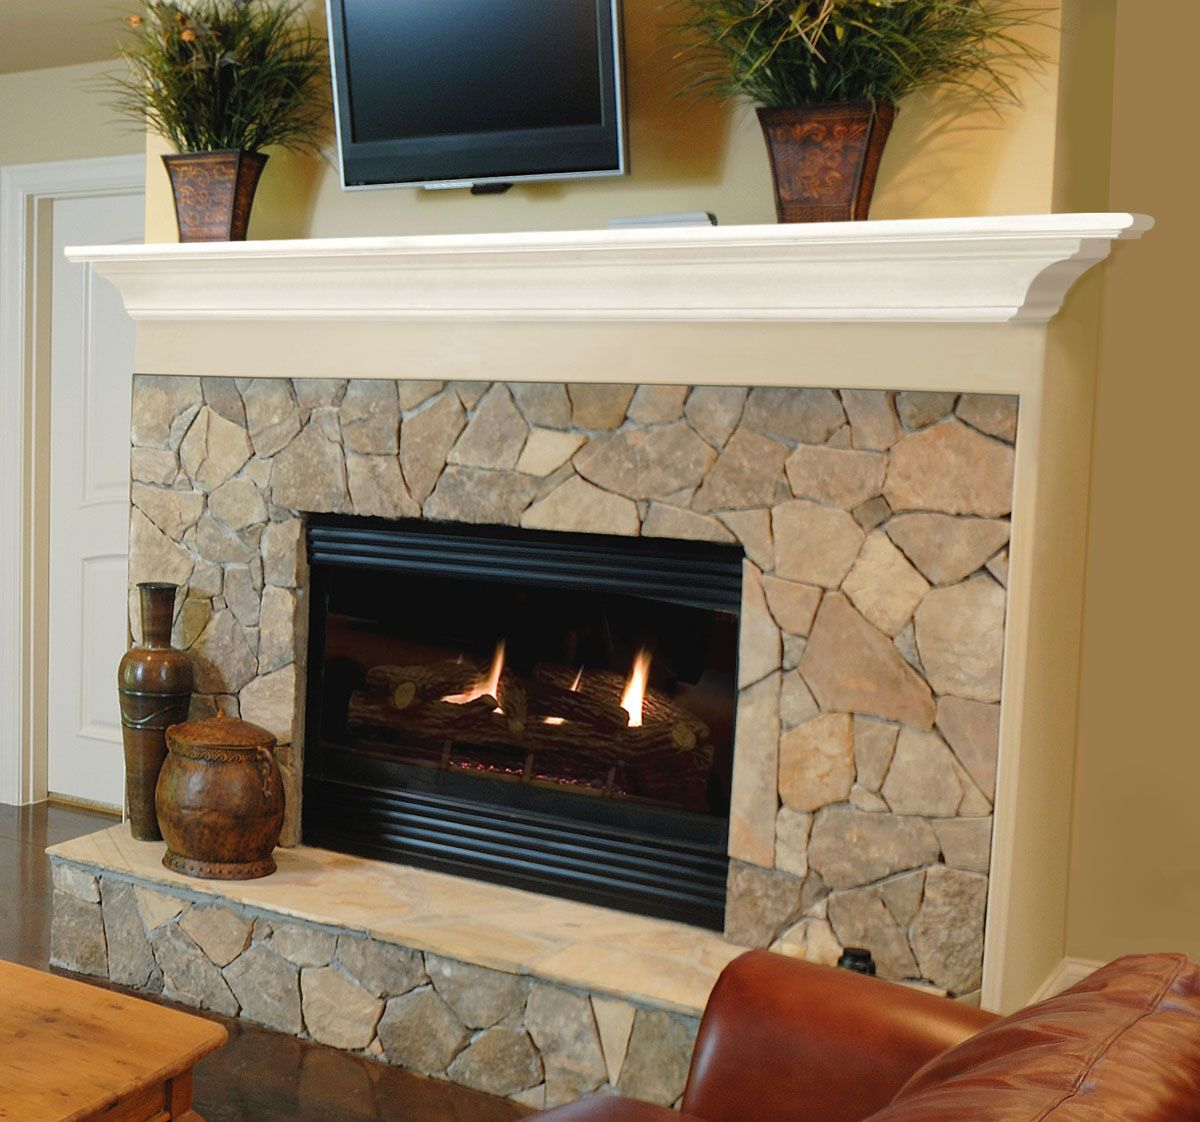 Fireplace Mantel White Pearl Mantels 618 Crestwood Mdf Fireplace Mantel Shelf